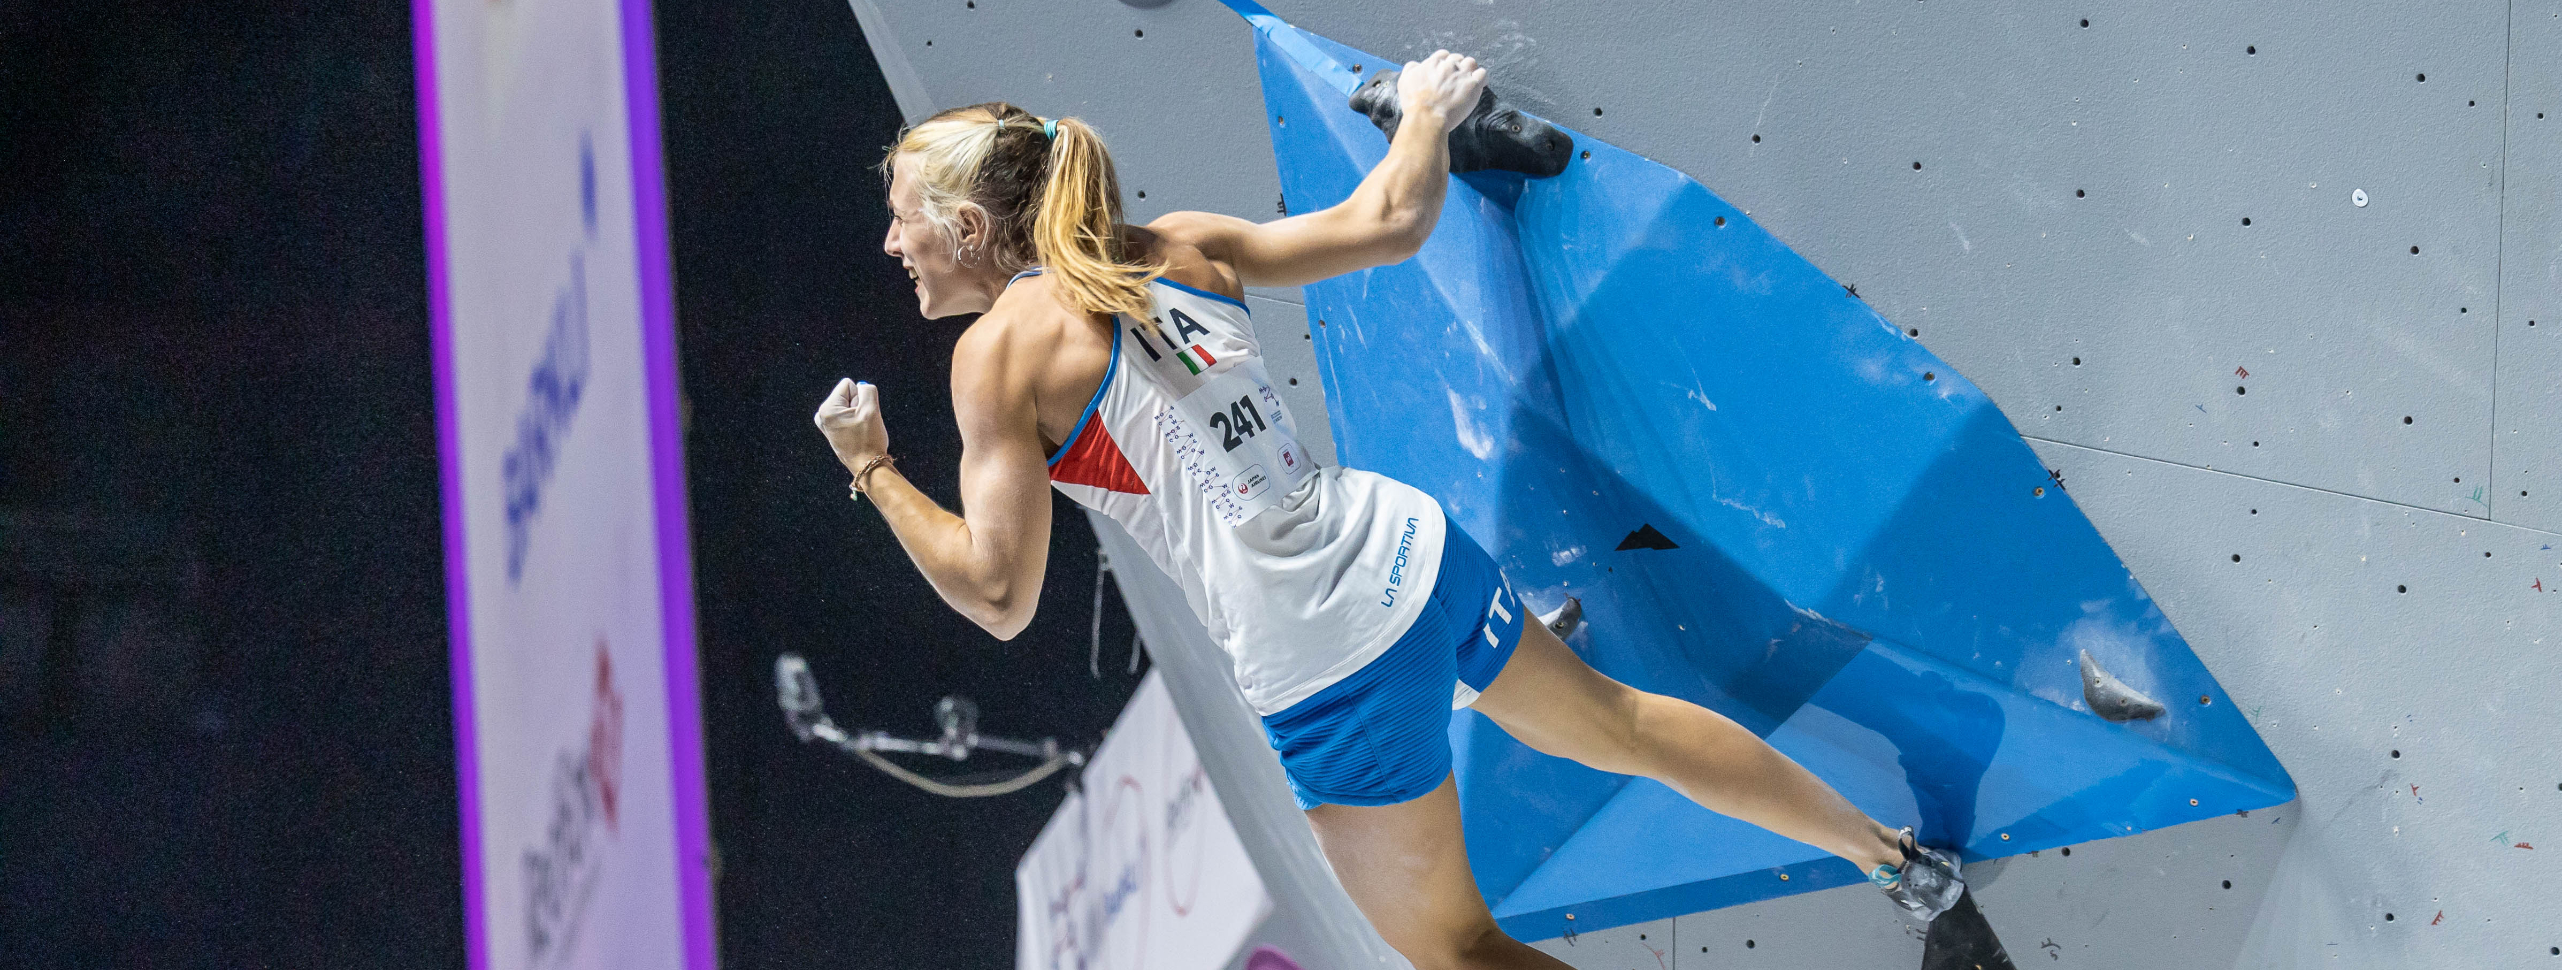 NATALIA GROSSMAN, CAMILLA MORONI LEAD THE PACK OF SIX CLIMBERS THAT WILL BATTLE FOR THE BOULDER WORLD TITLE